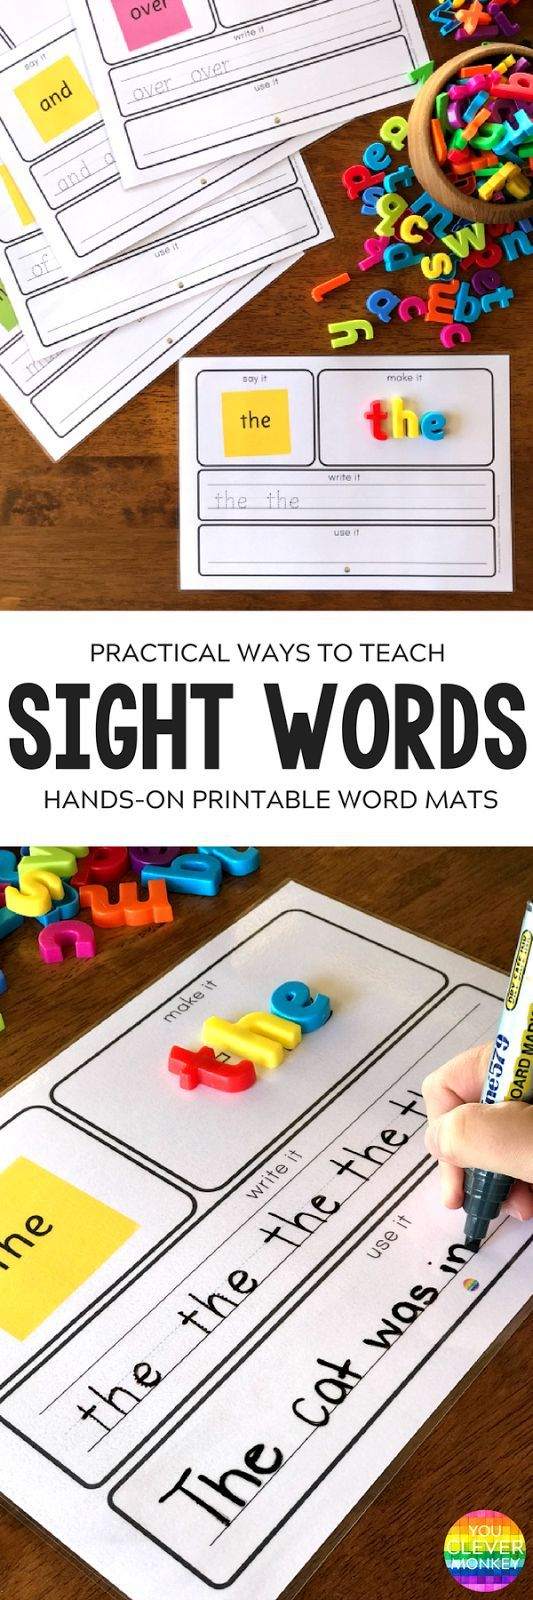 Teaching Sight Words - practical ways to teach high frequency words plus printable sight word mats to use | you clever monkey